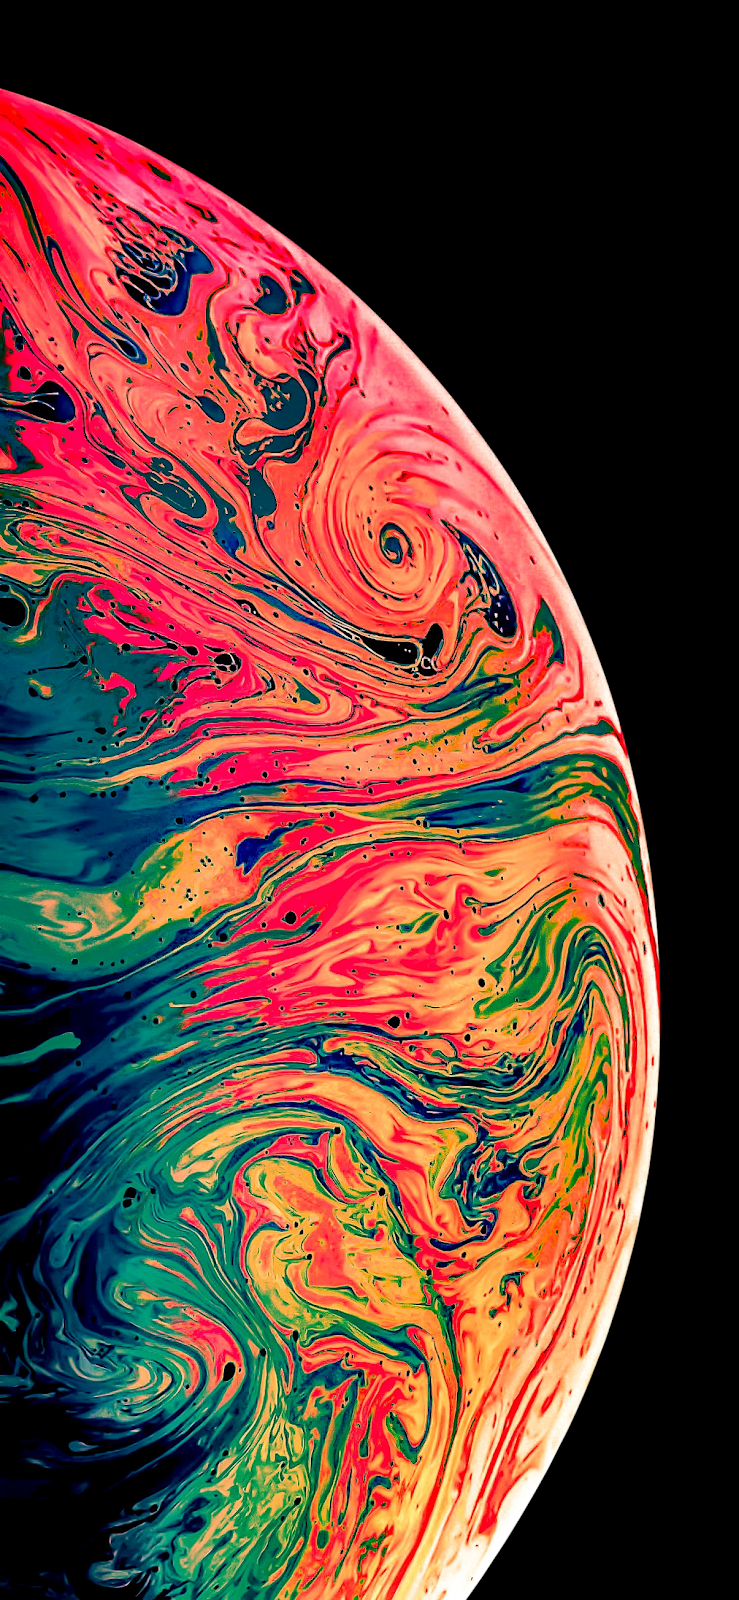 Cool Wallpapers For Iphone Xs Max